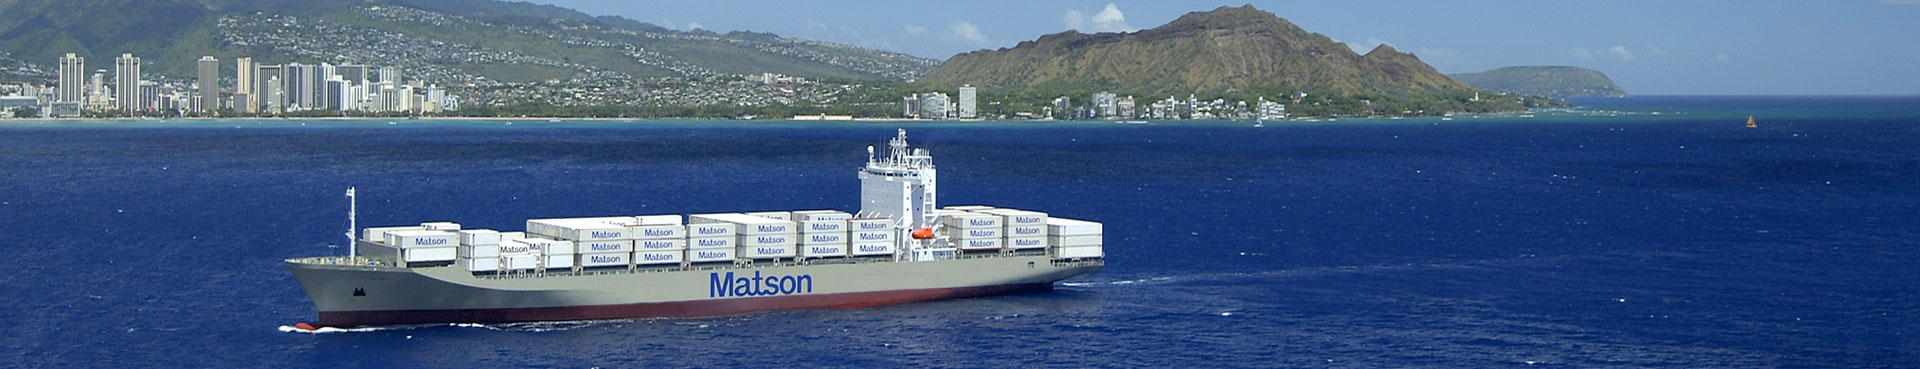 Matson containership arriving Honolulu, Hawaii with containers.